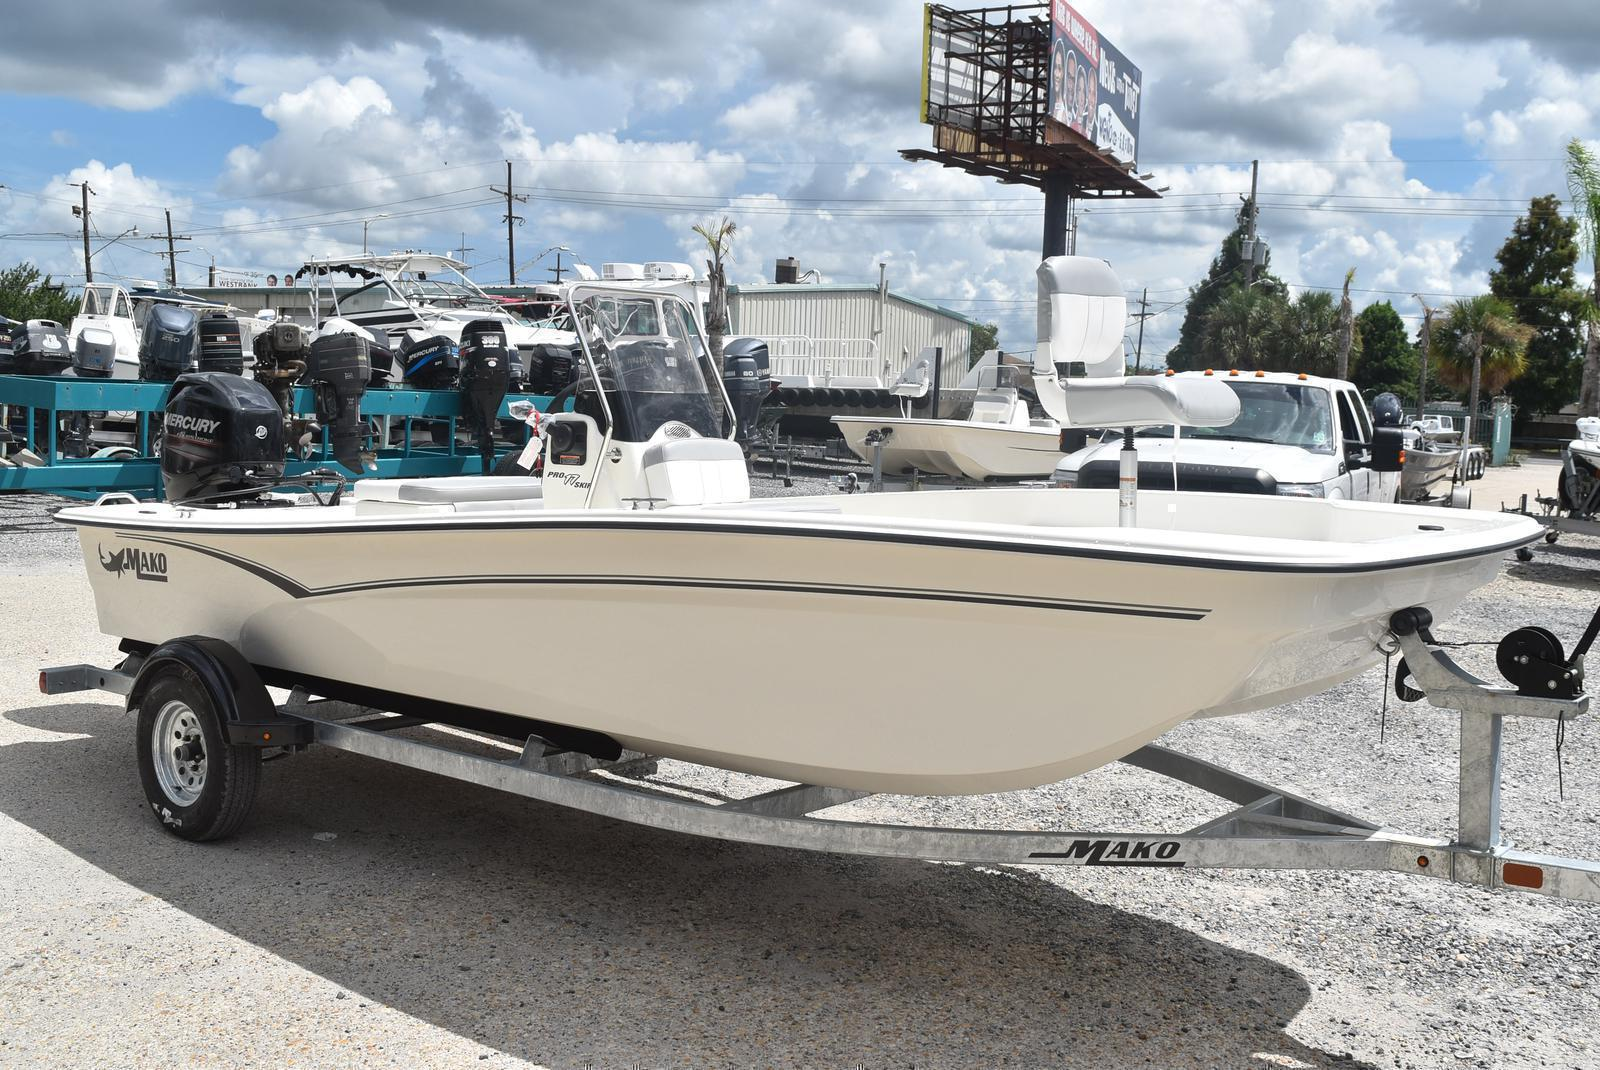 2020 Mako boat for sale, model of the boat is Pro Skiff 17, 75 ELPT & Image # 679 of 702